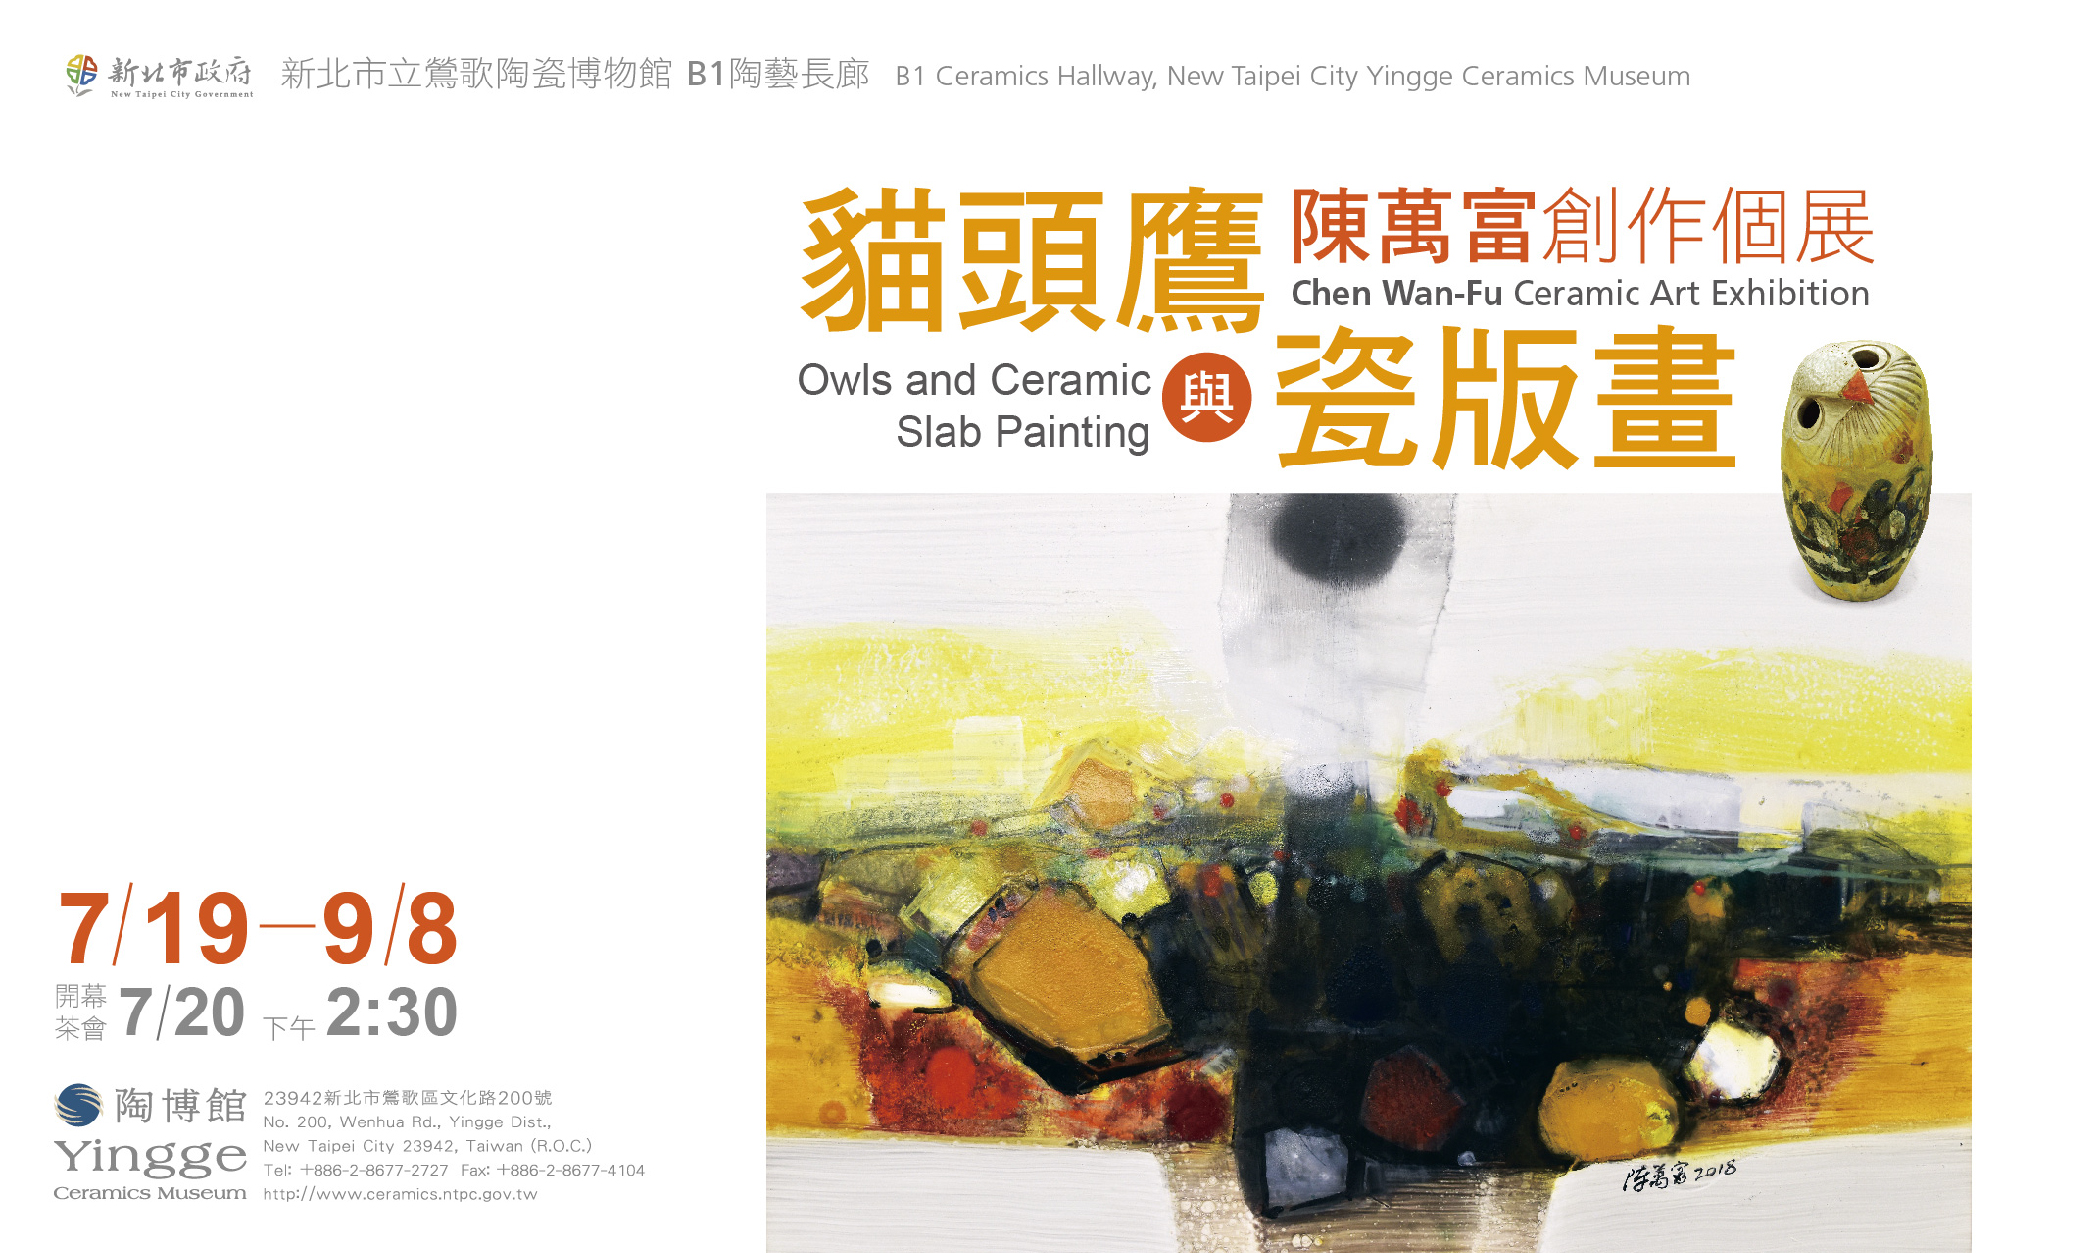 Owls and Ceramic Slab Painting: CHEN Wan-Fu Ceramic Art Exhibition